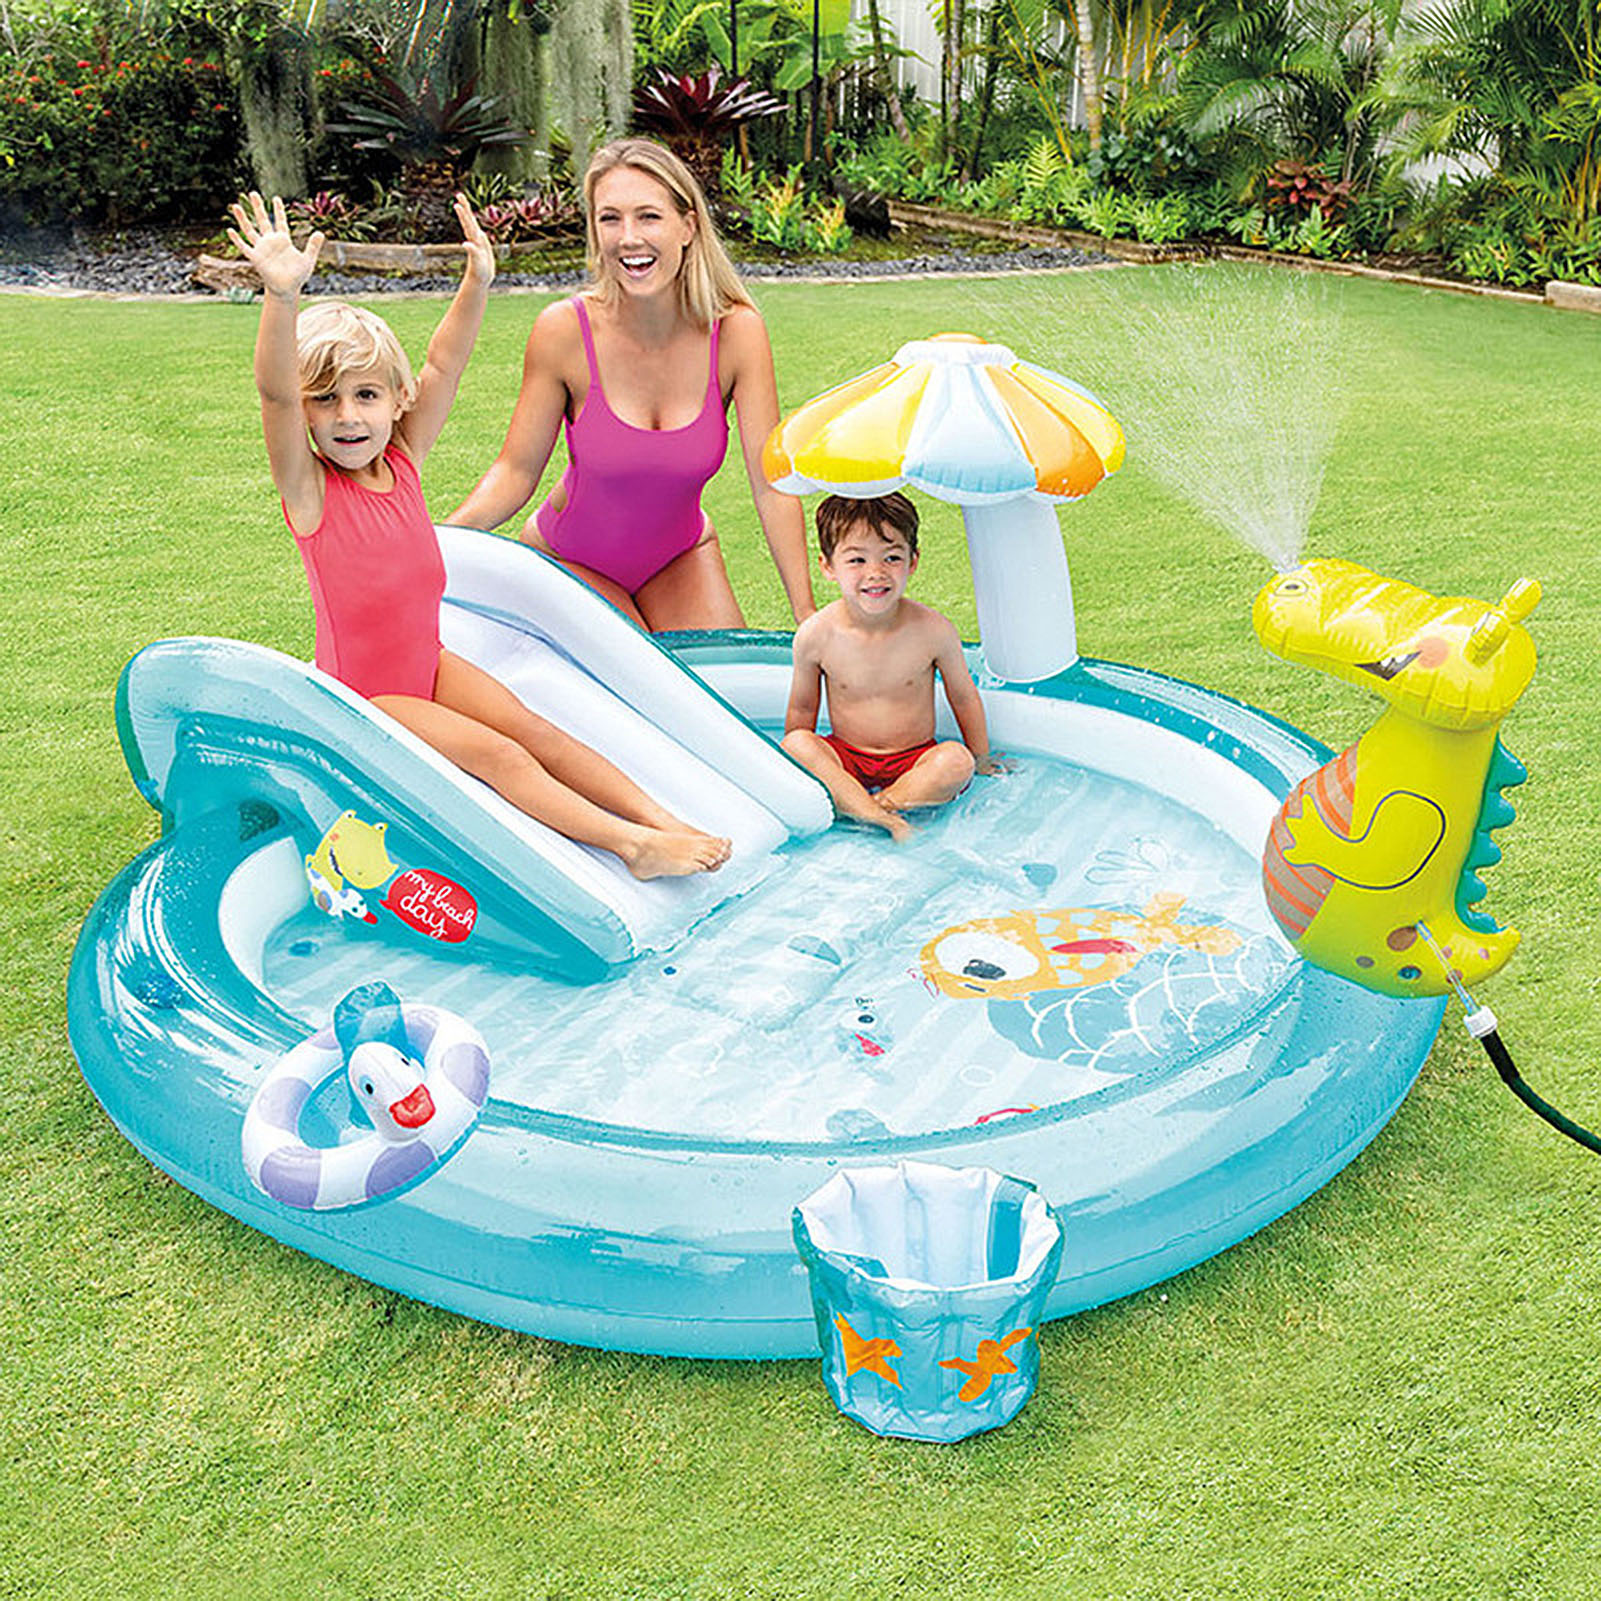 Kids Inflatable Swimming Pool Gator Baby Pool Children Inflatable Bath Tub Large Baby Paddling Pool Outdoor Water Party Toys